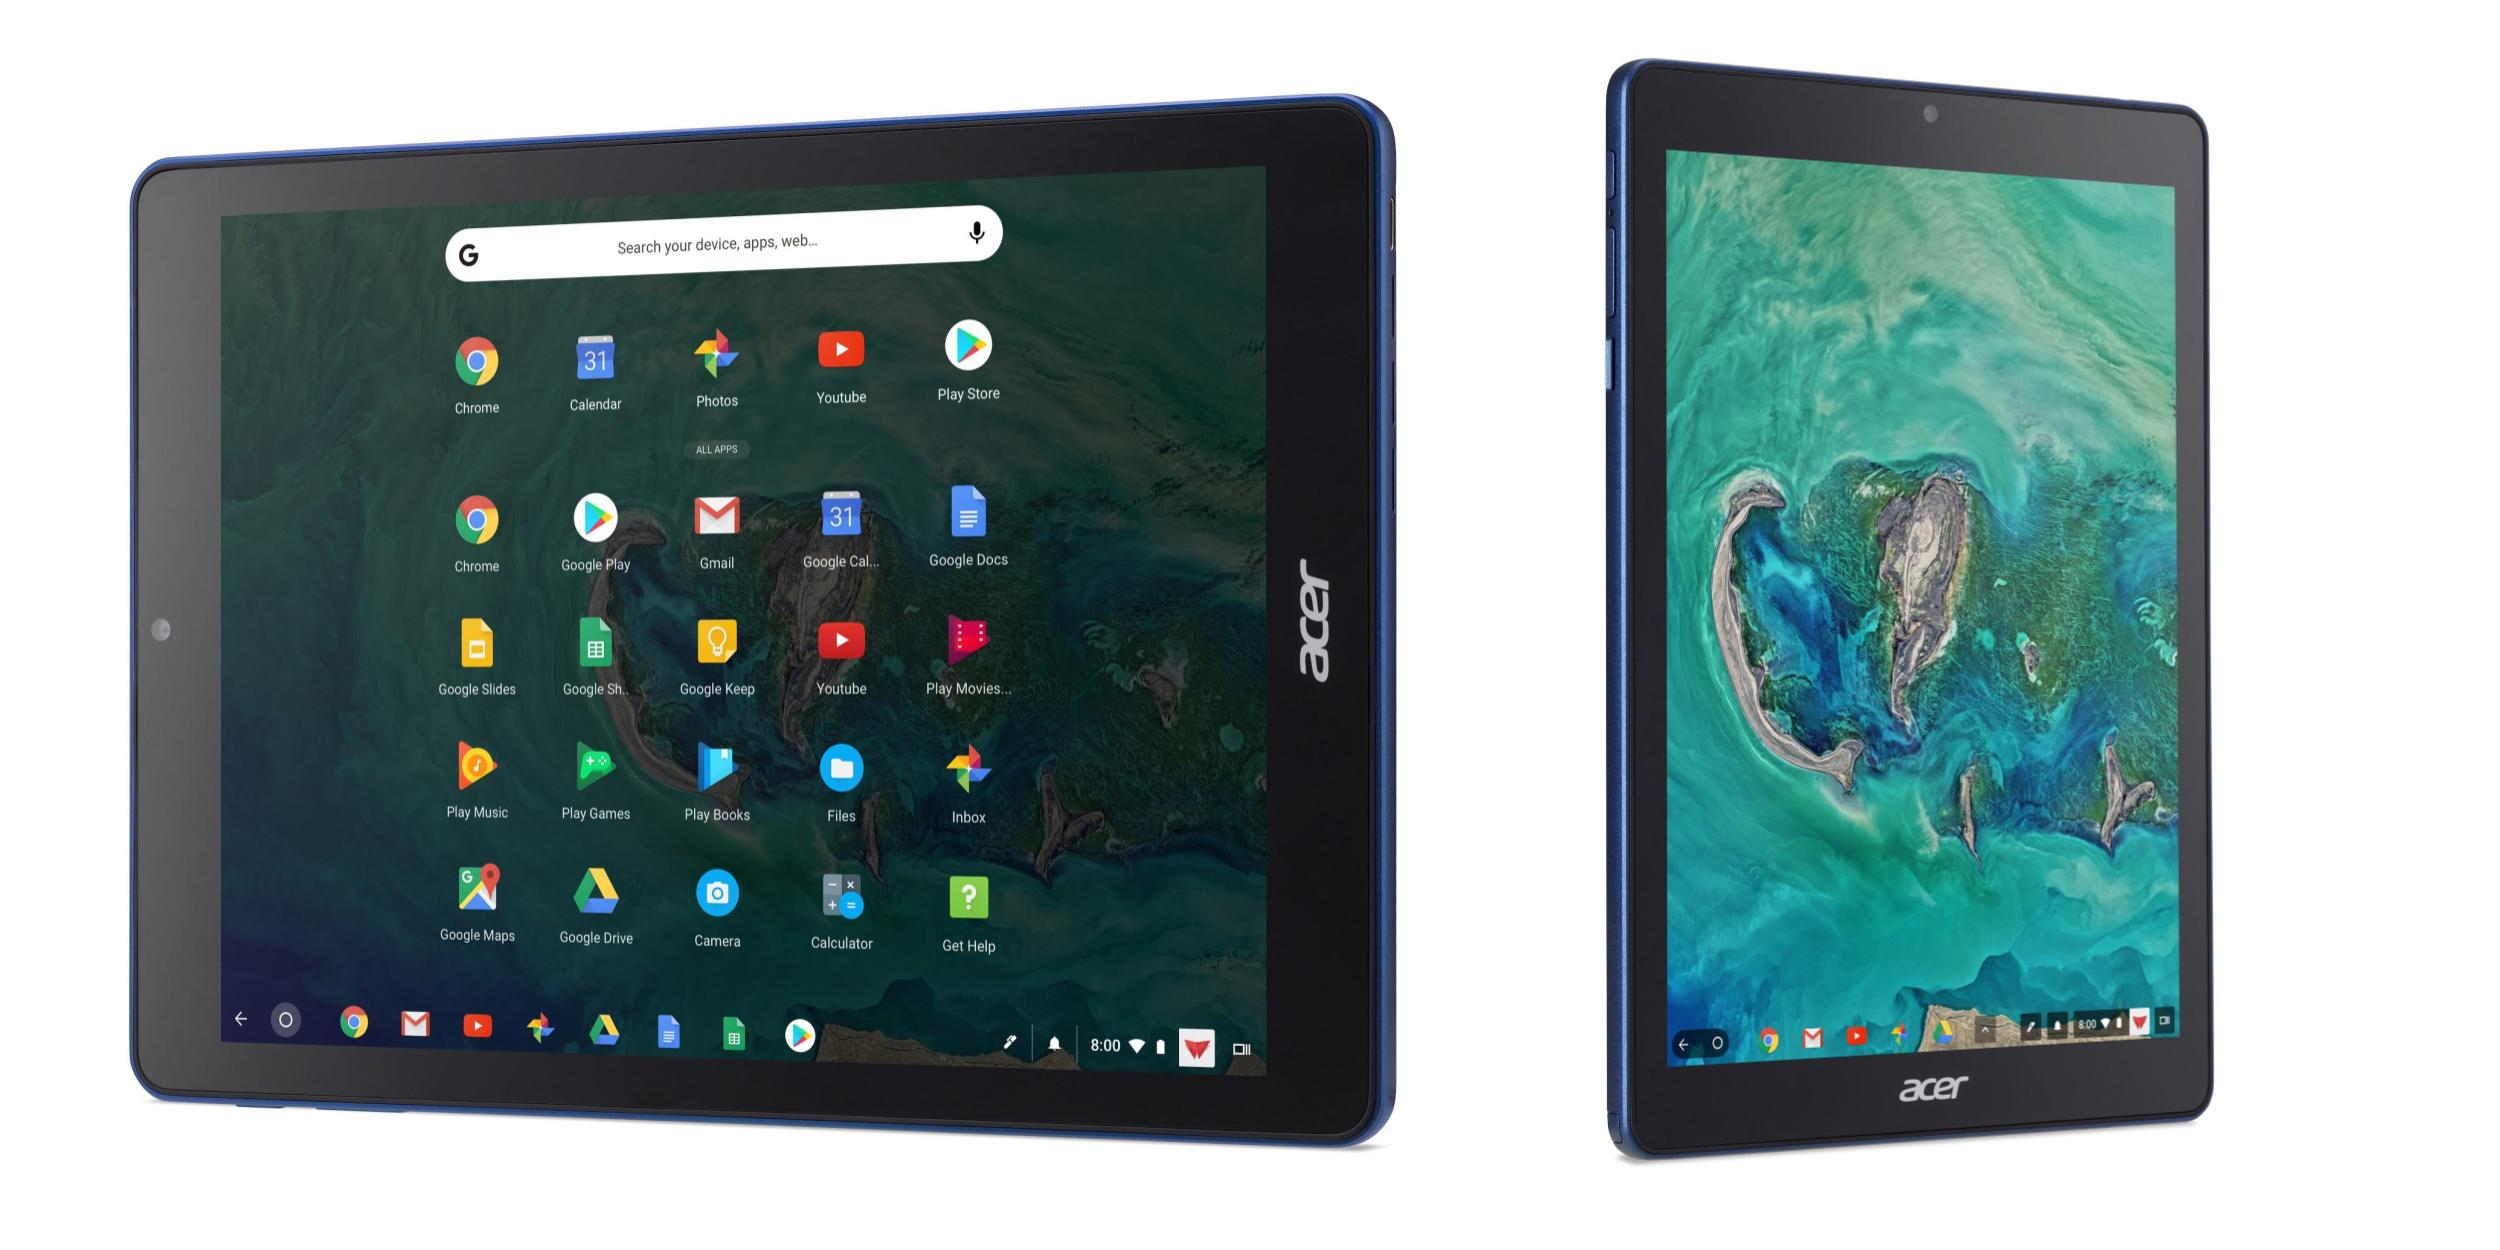 Google debuts Chrome OS tablets to take on the iPad in education